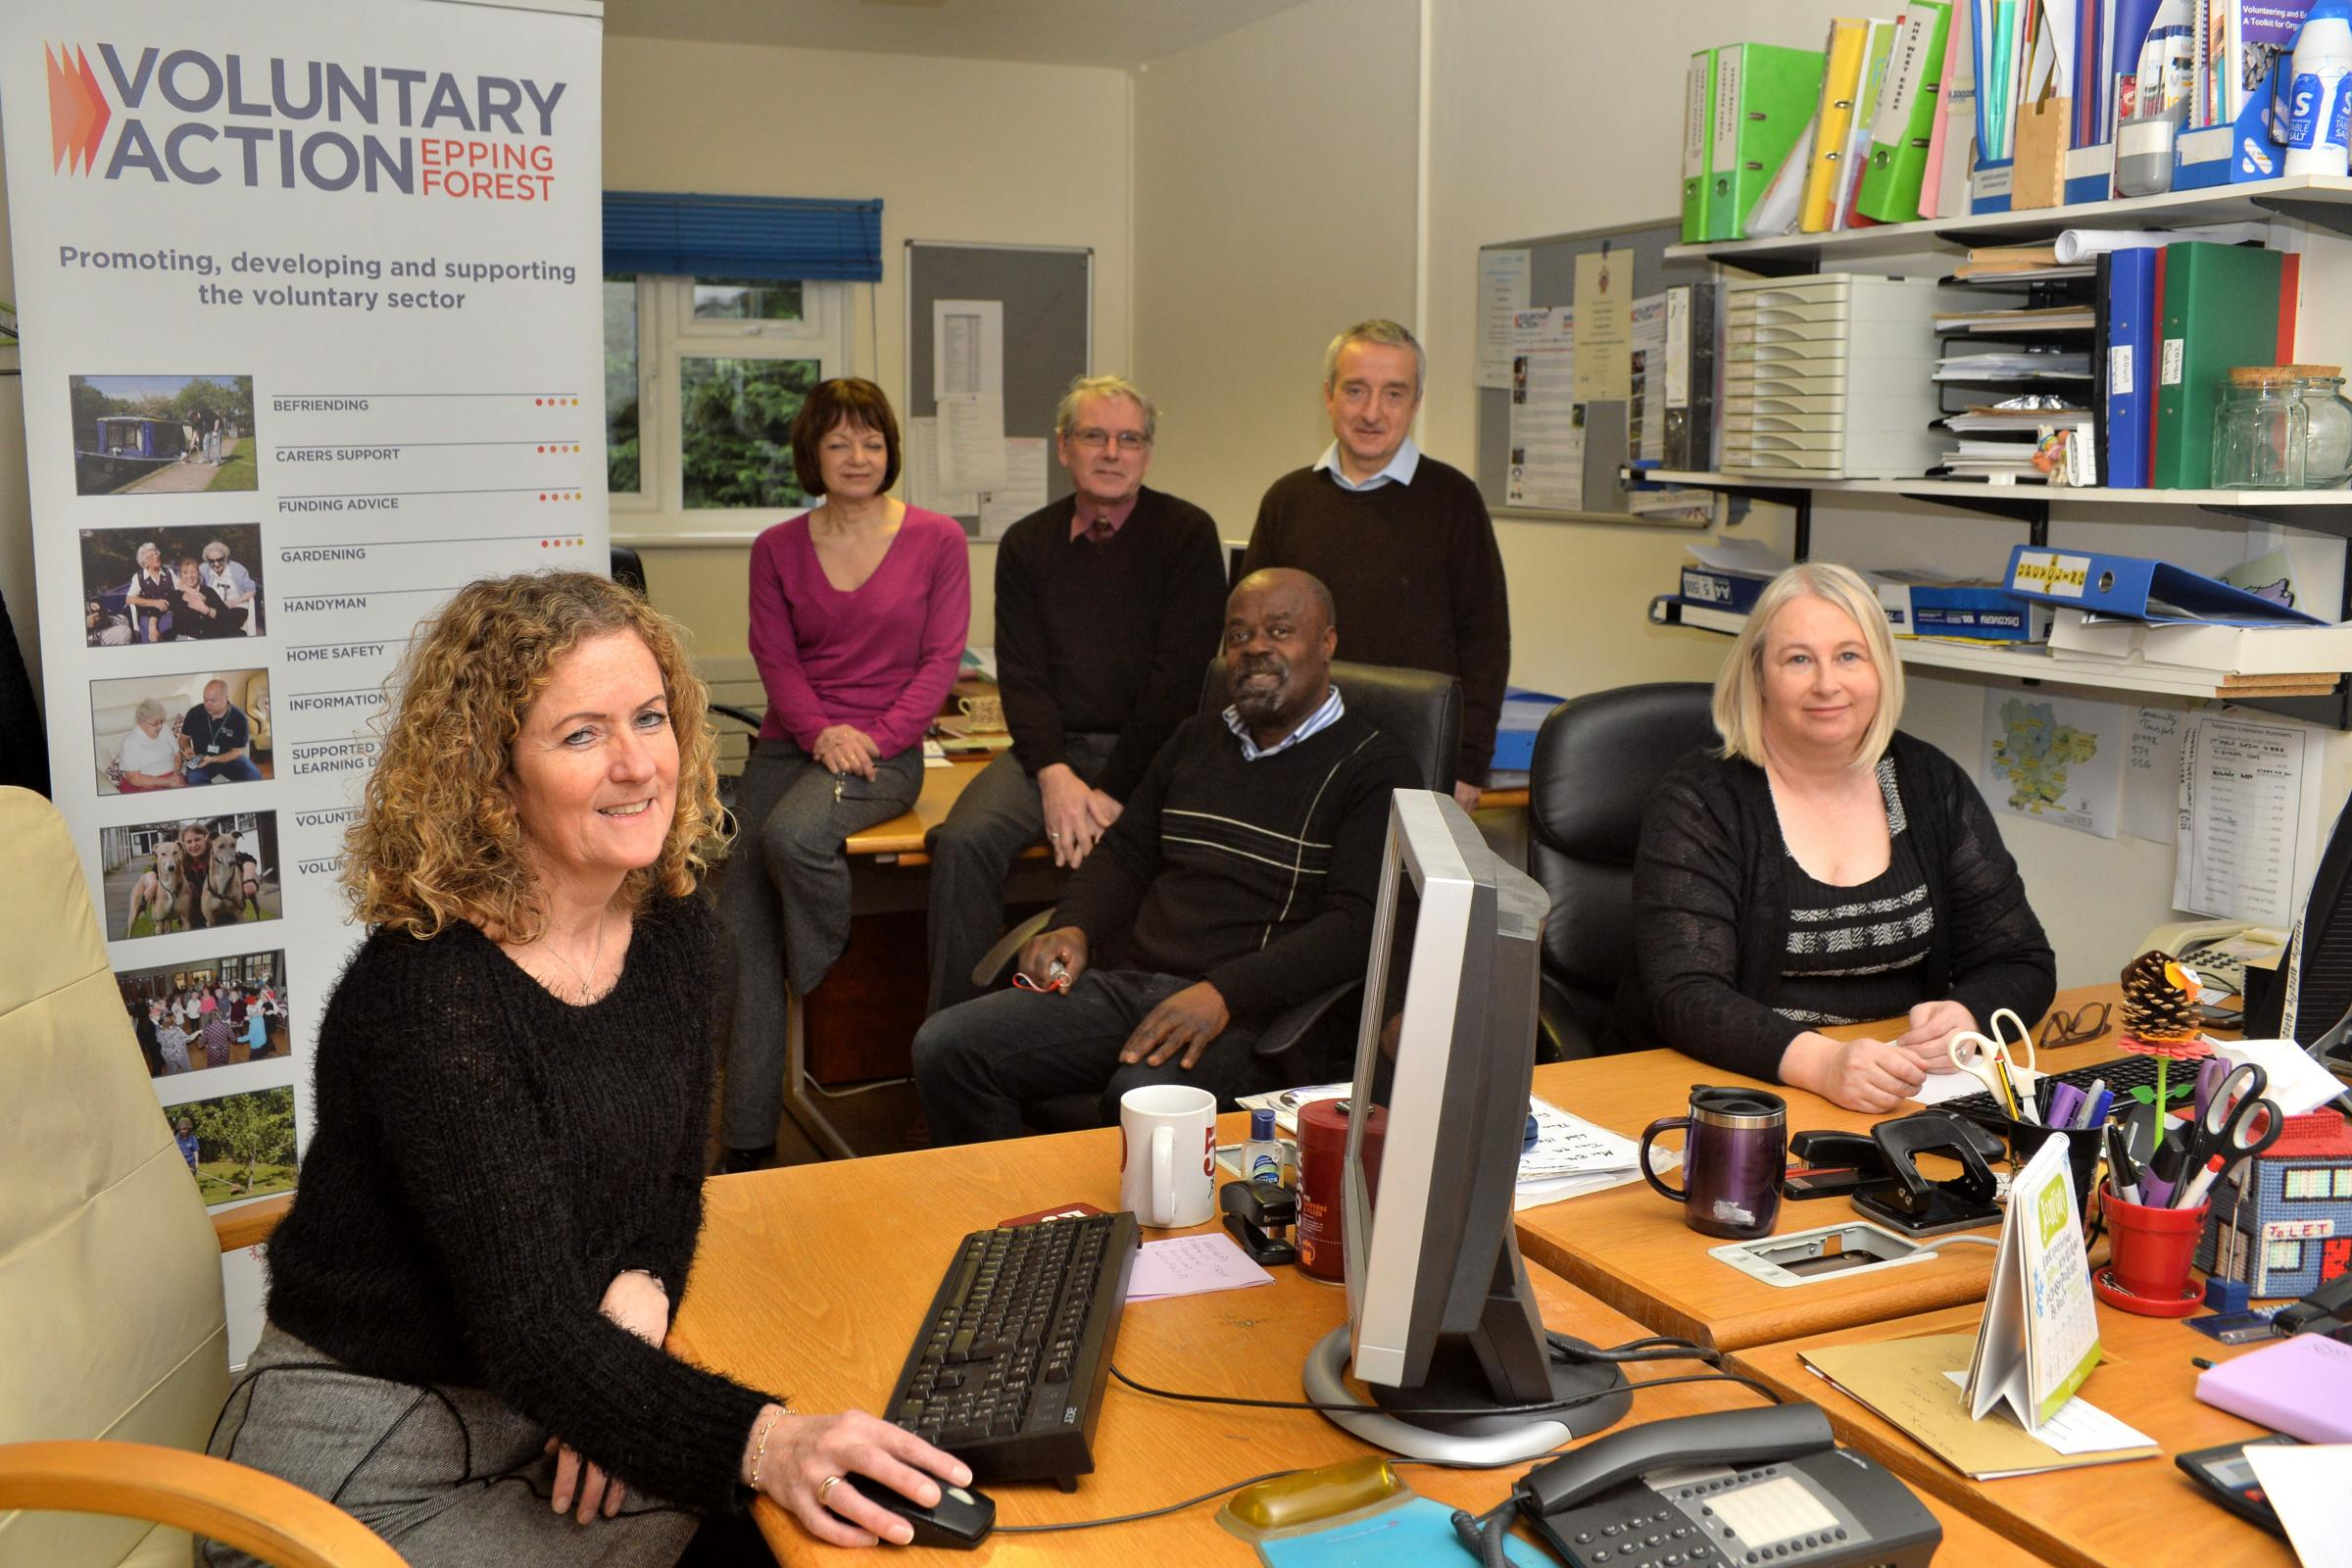 Chief officer Jacqui Foile with staff members Debbie Smith, David Wright, Aubrey Brandy, Colin Rowell and Maggie Gilchrist, the Voluntary Action charity needs  a new home, their lease is up on March 18. Epping, Essex. (9/1/2018) EL91787_02